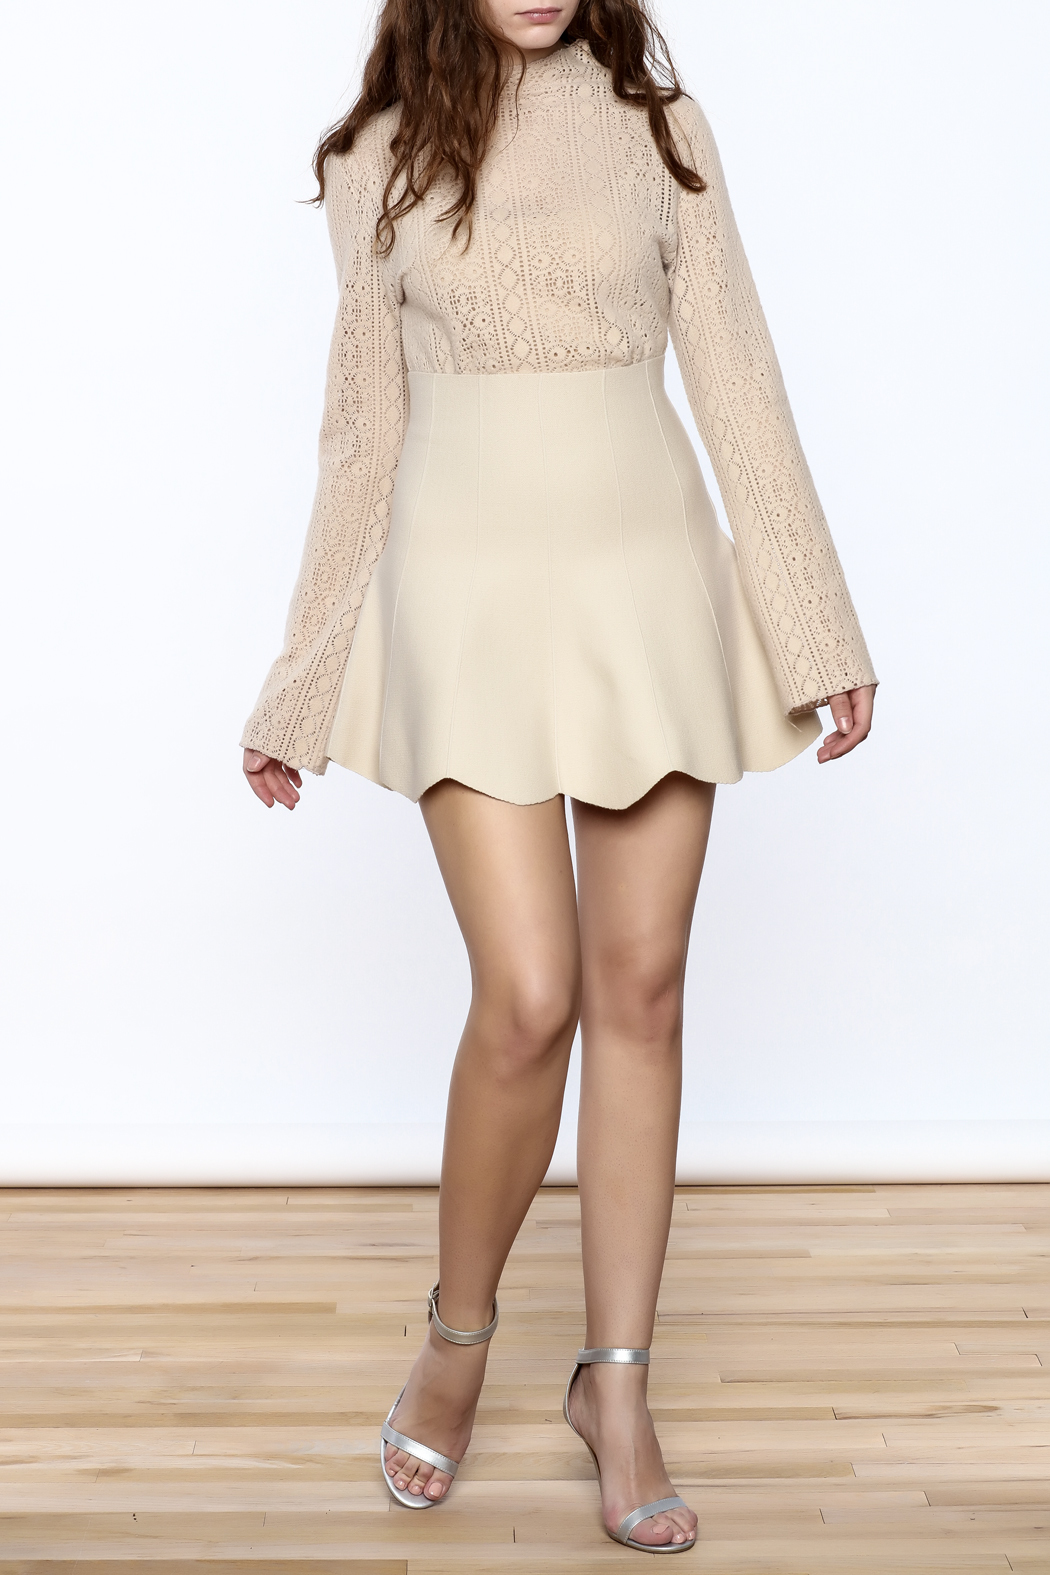 Pinkyotto Scalloped Edge Short Skirt - Front Full Image